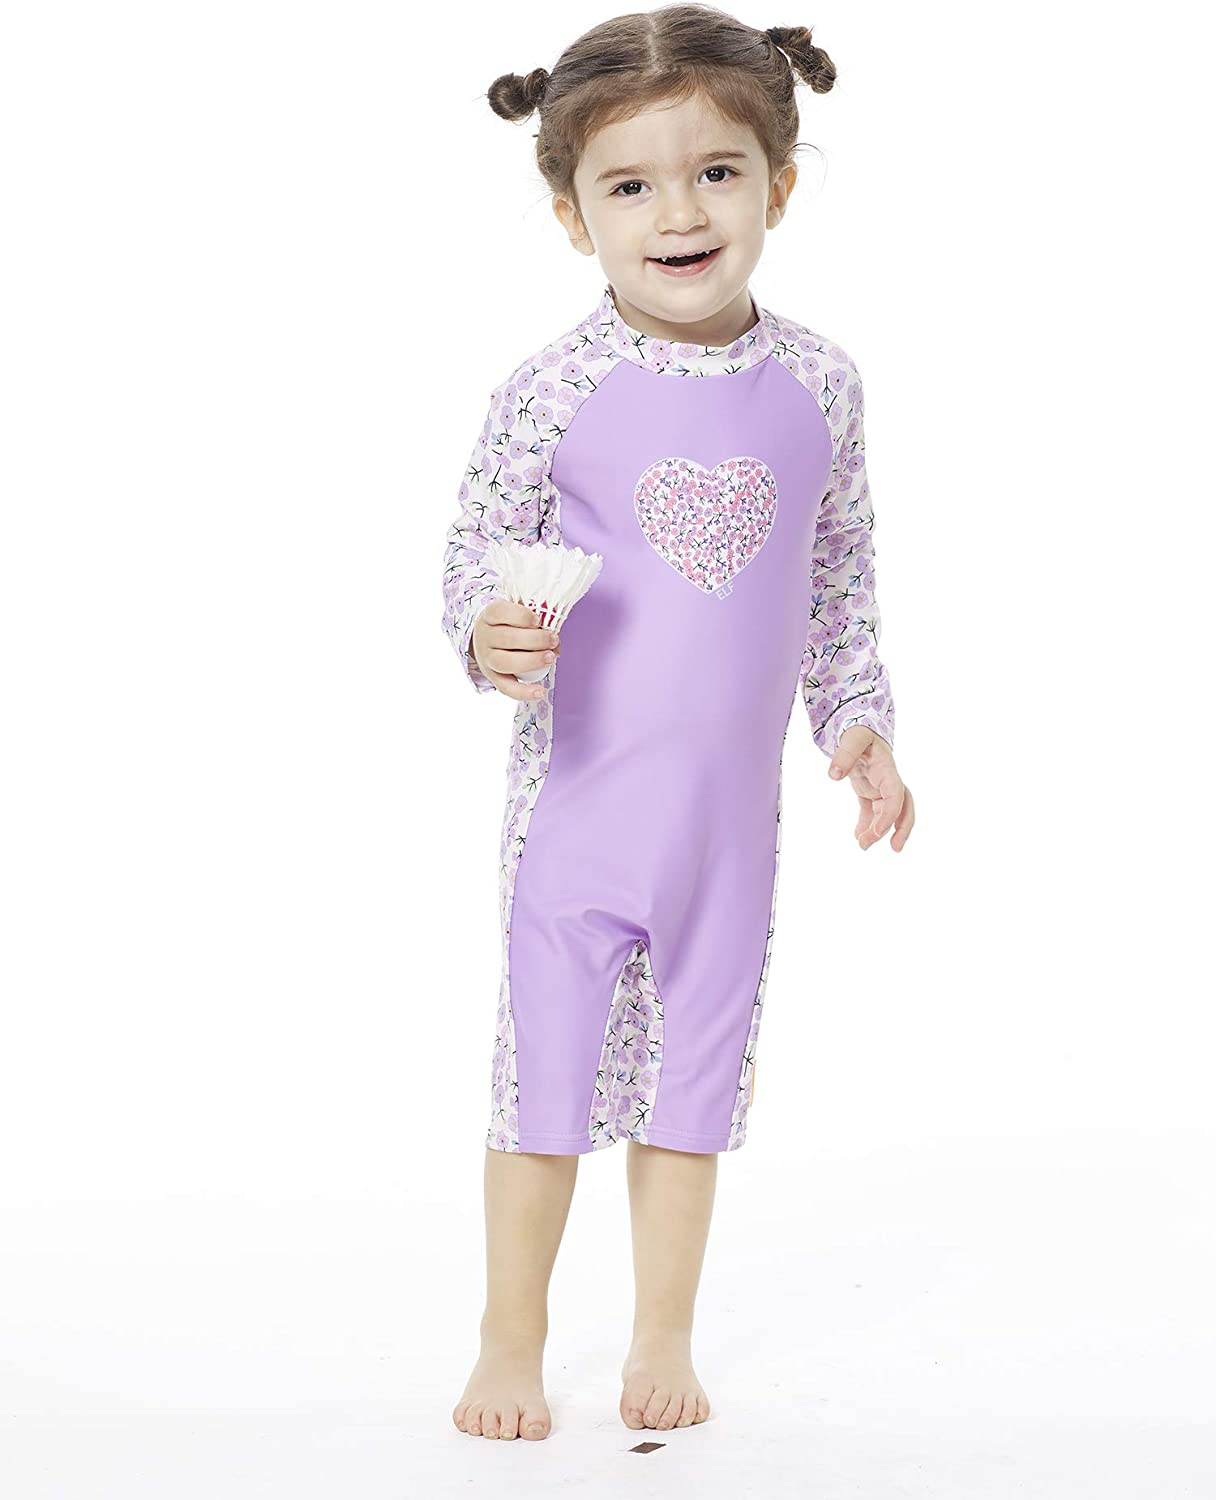 UV Protection One Pieces Sunsuit with Sun Cap Bonverano Baby Girls Swimsuit UPF 50 Purple, 24-36Months